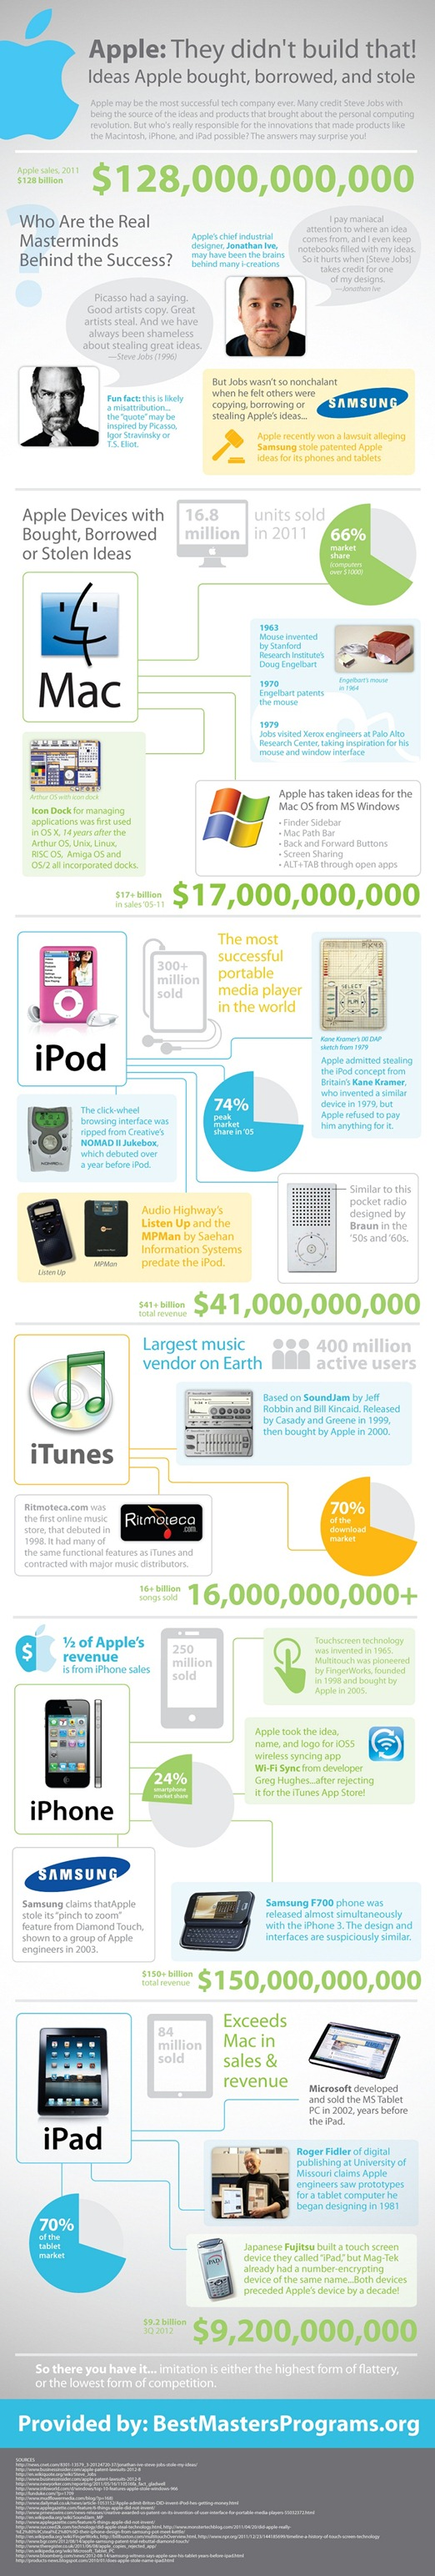 apple-infographic - unpocogeek.com